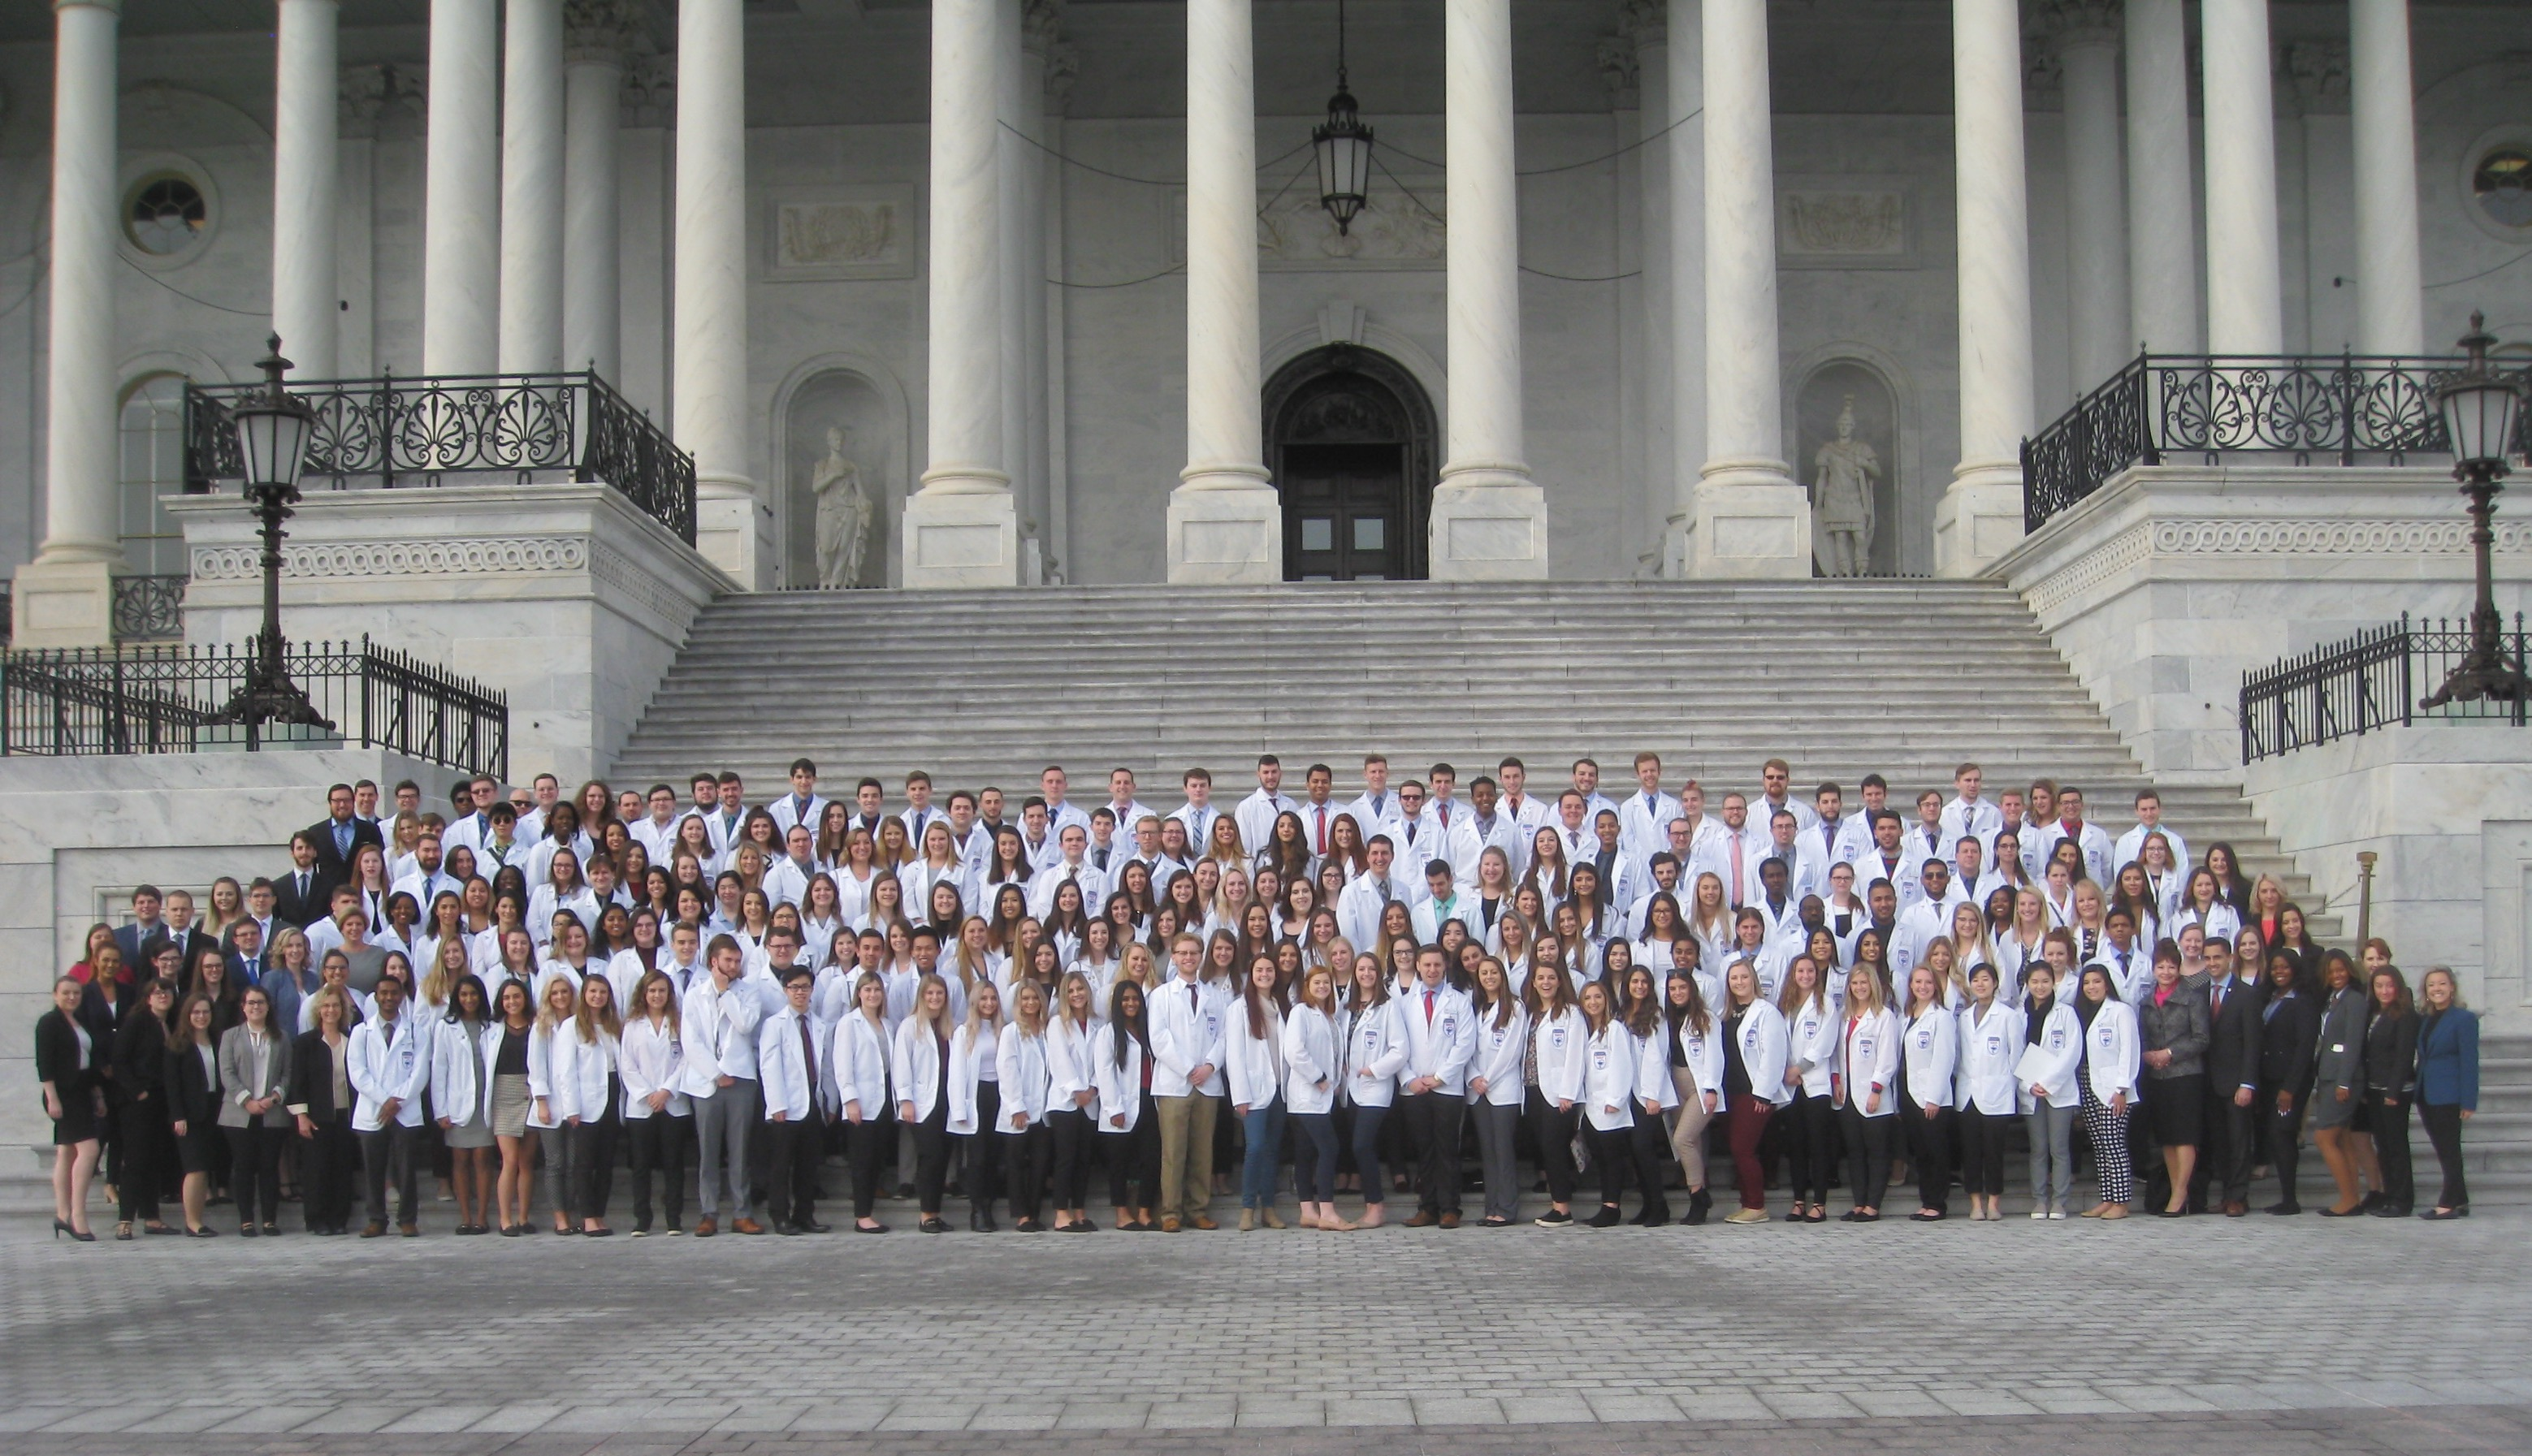 School of Pharmacy and School of Law on Capitol Hill